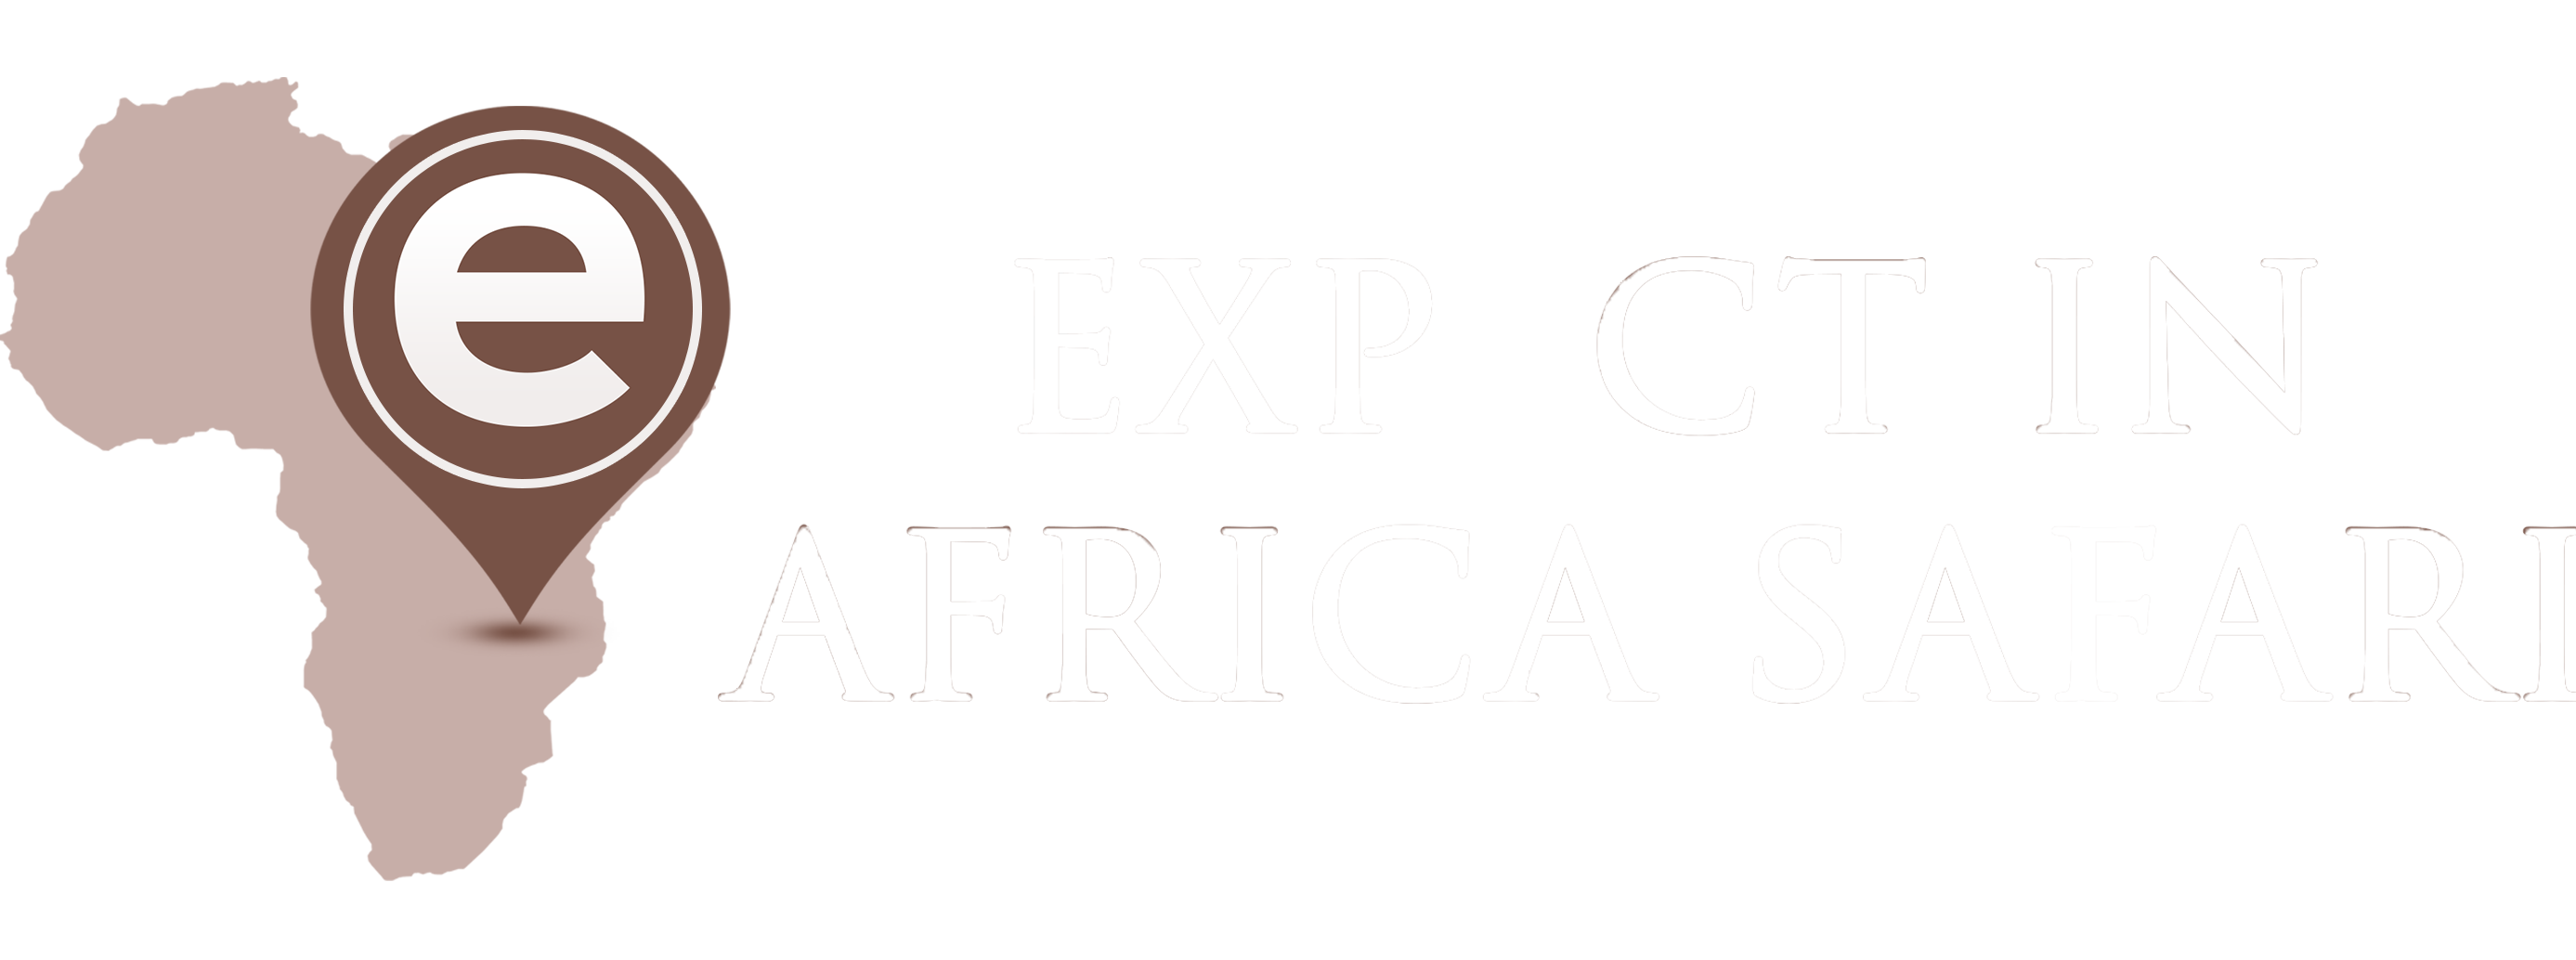 Expect In Africa Safari logo